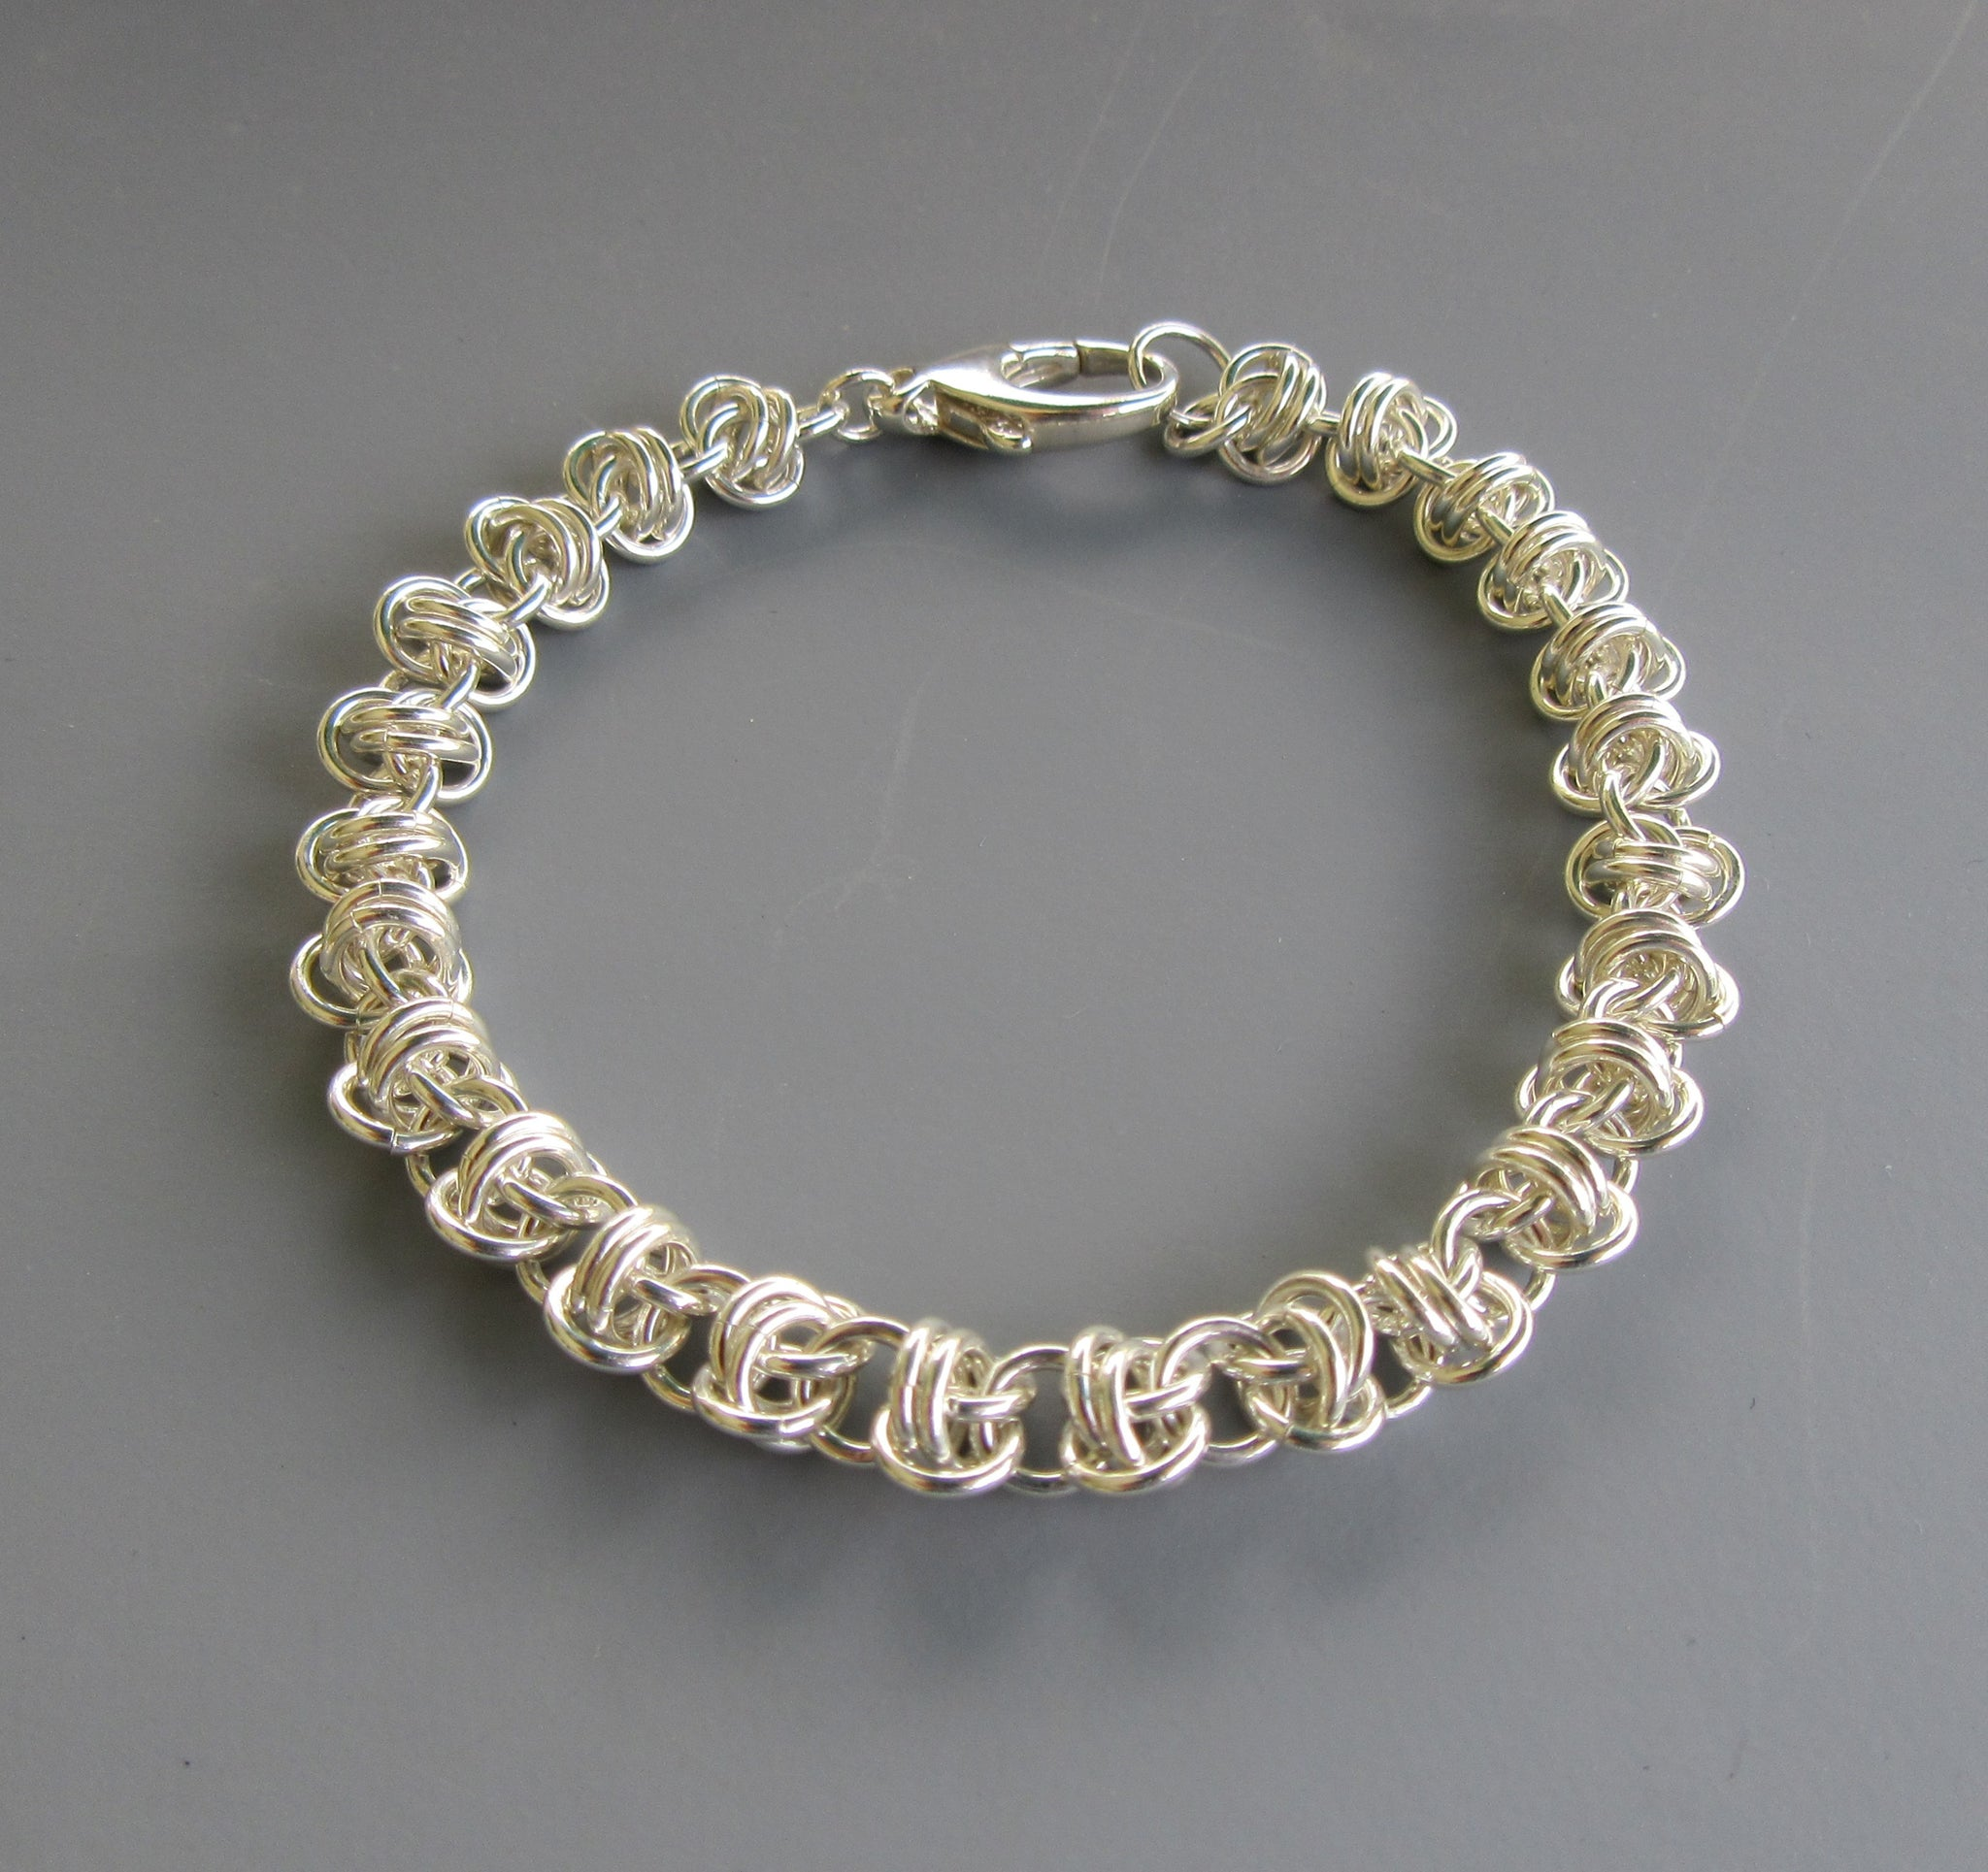 Barrel Weave Chainmaille Bracelet Class with Bev Fox